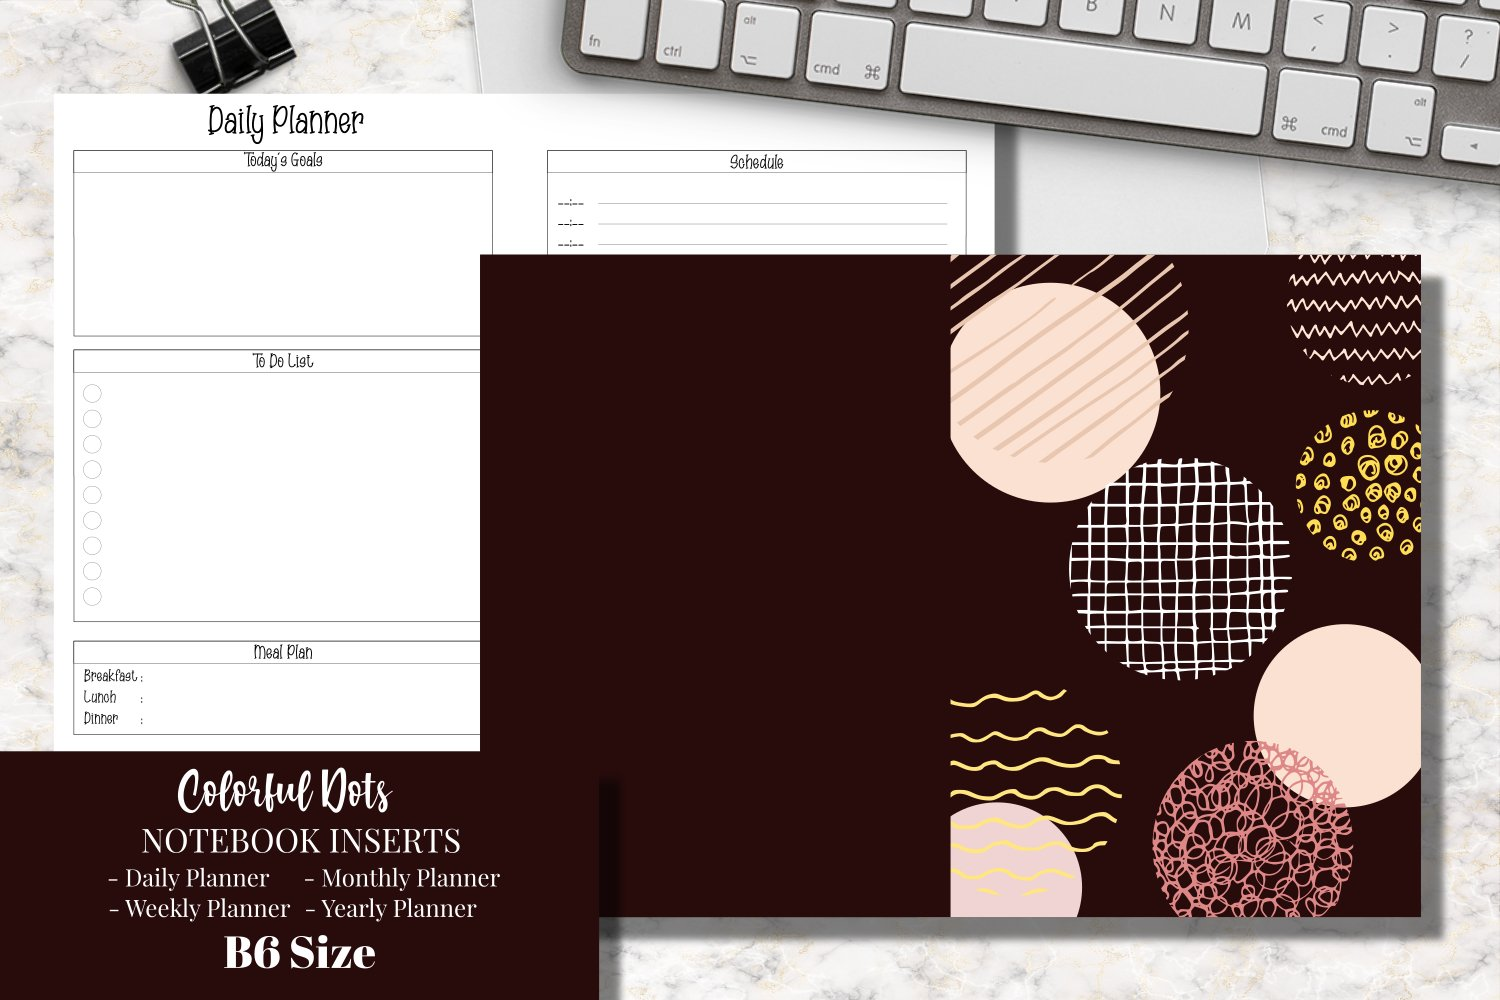 Colorful Dots B6 Size Notebook Inserts Planner example image 1